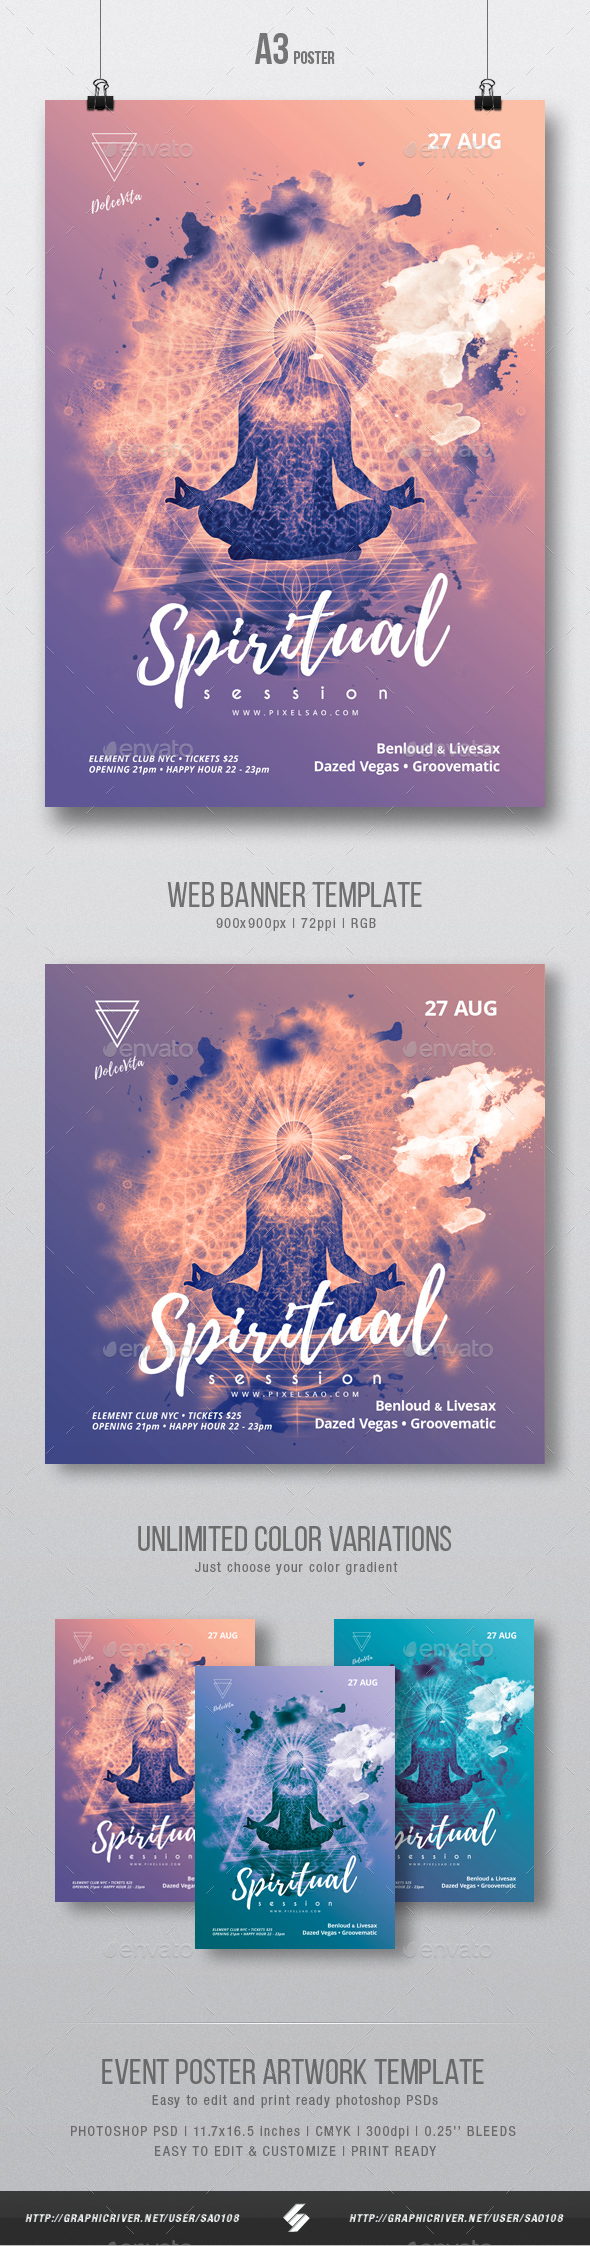 Spiritual Session - Party Flyer / Poster Artwork Template A3 - Clubs & Parties Events